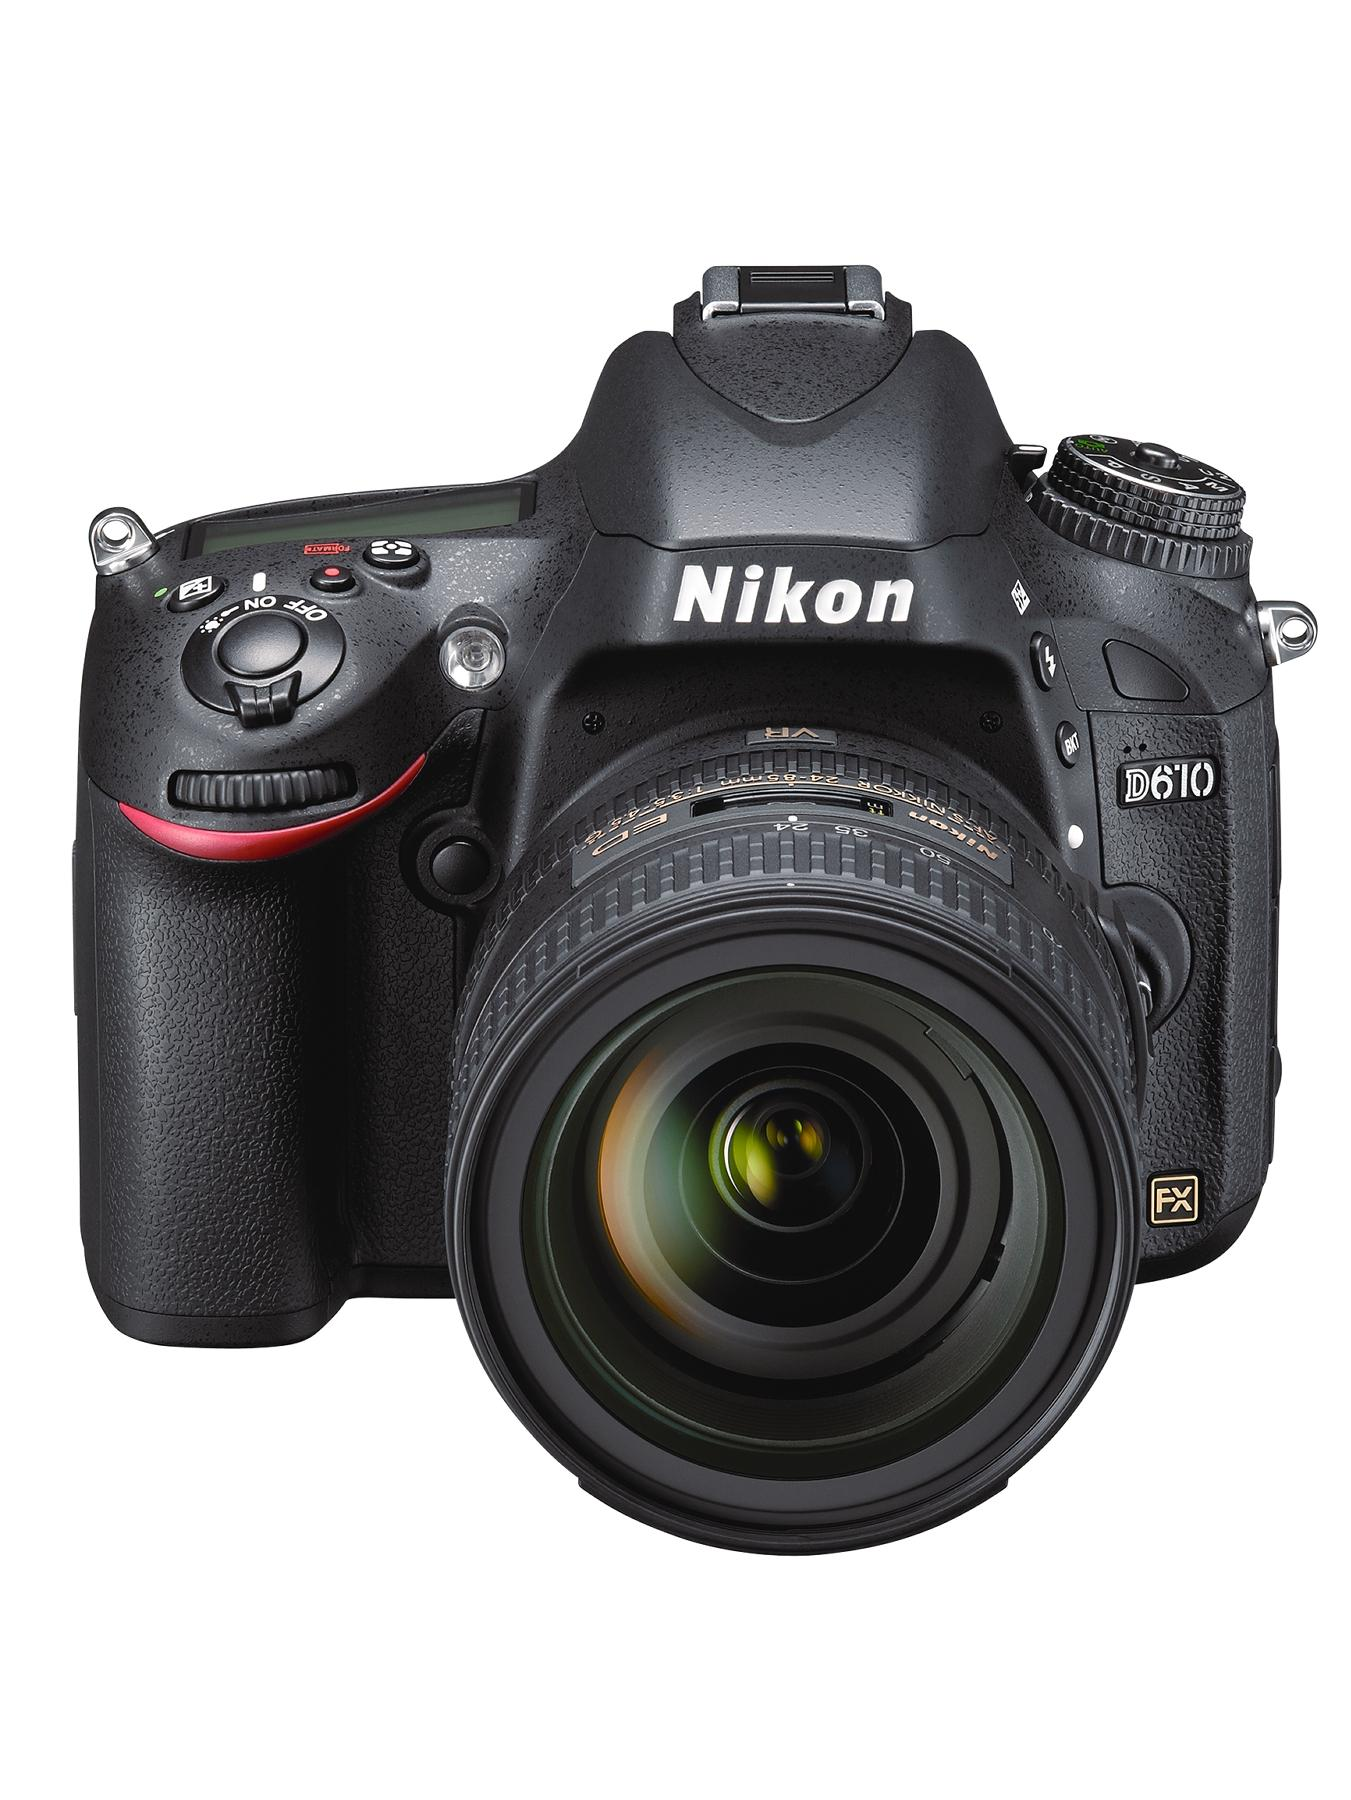 D610 24.3 Megapixel Digital SLR Camera with 24-85mm Lens